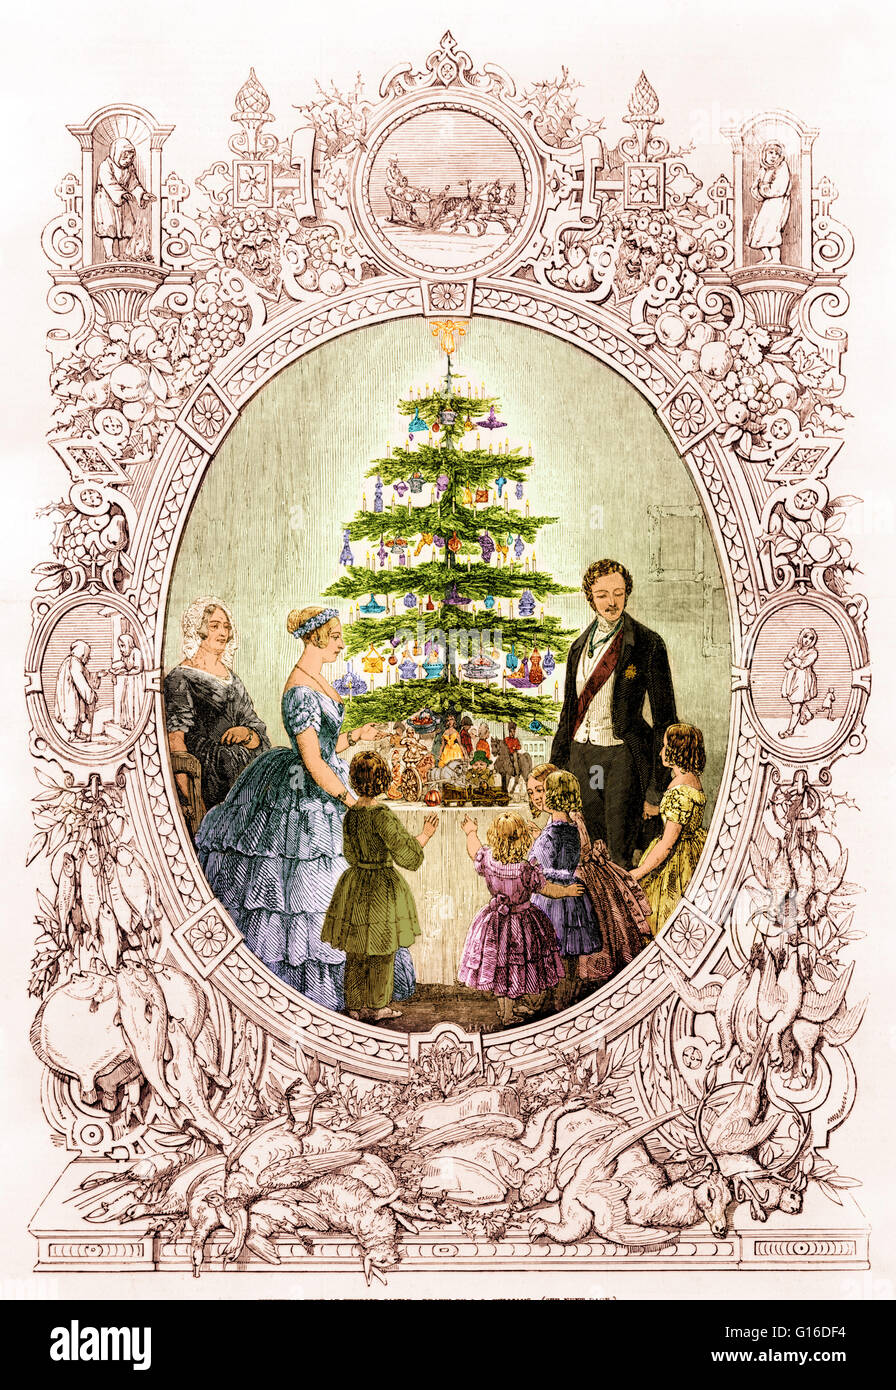 """Entitled: """"Christmas tree at Windsor Castle"""" engraving of the royal family around Christmas tree, depicted in an Stock Photo"""